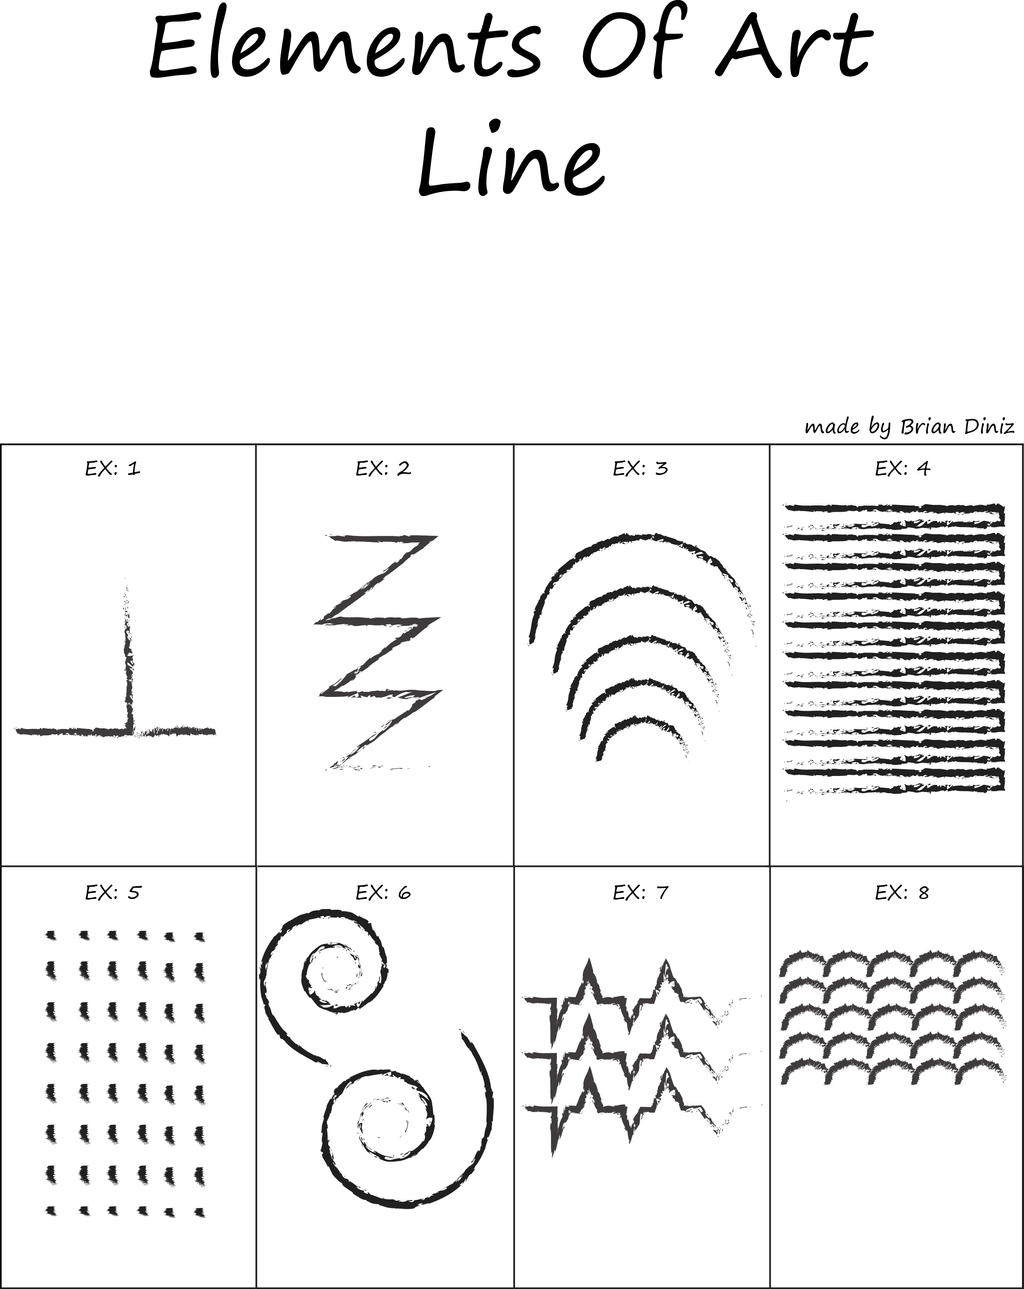 Line Art Element Definition : Elements of art lines by briandnz on deviantart